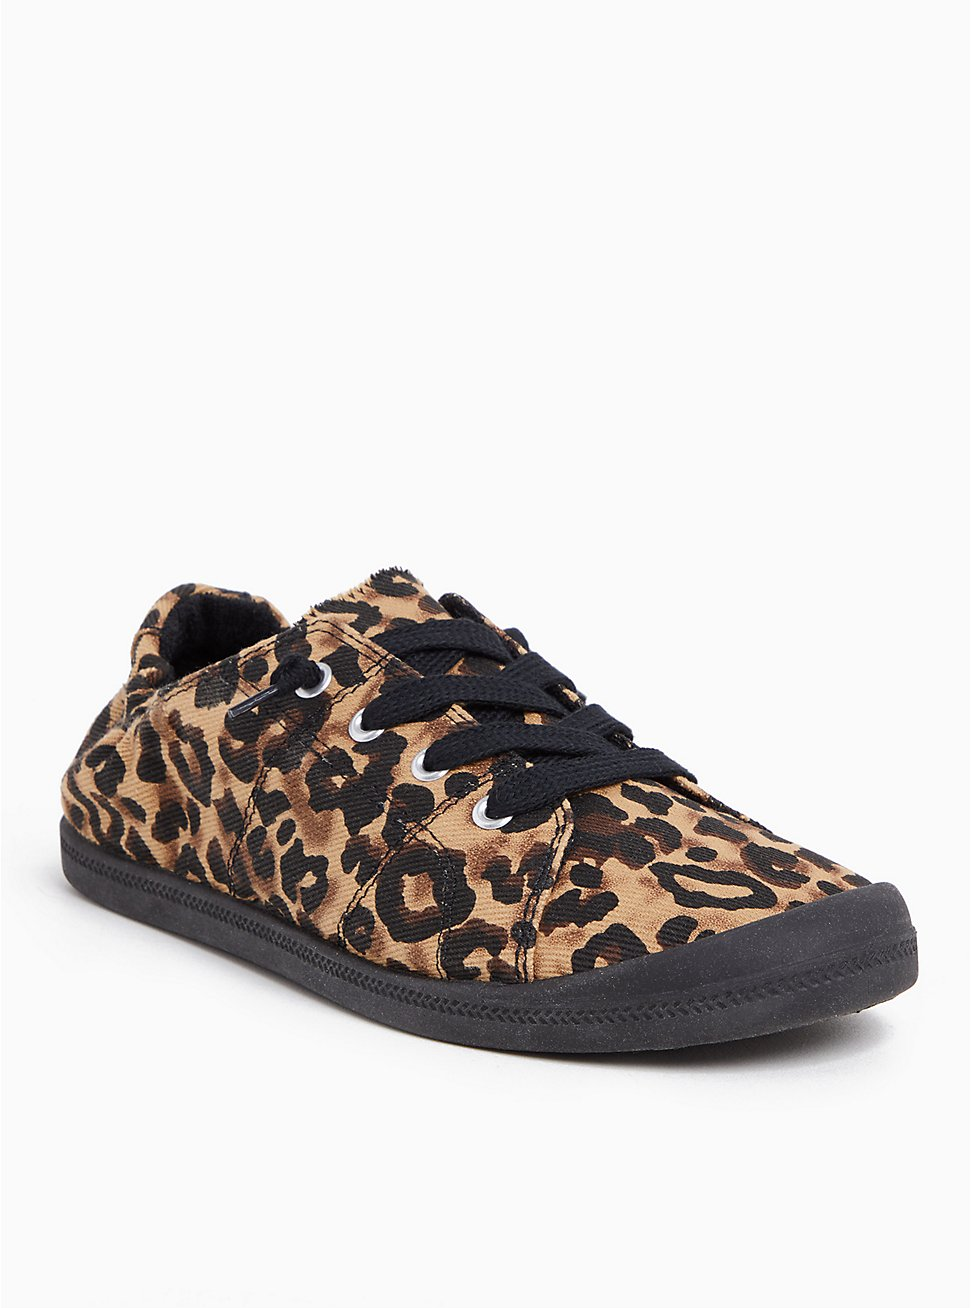 Plus Size Black & Leopard Canvas Ruched Sneaker (WW), ANIMAL, hi-res